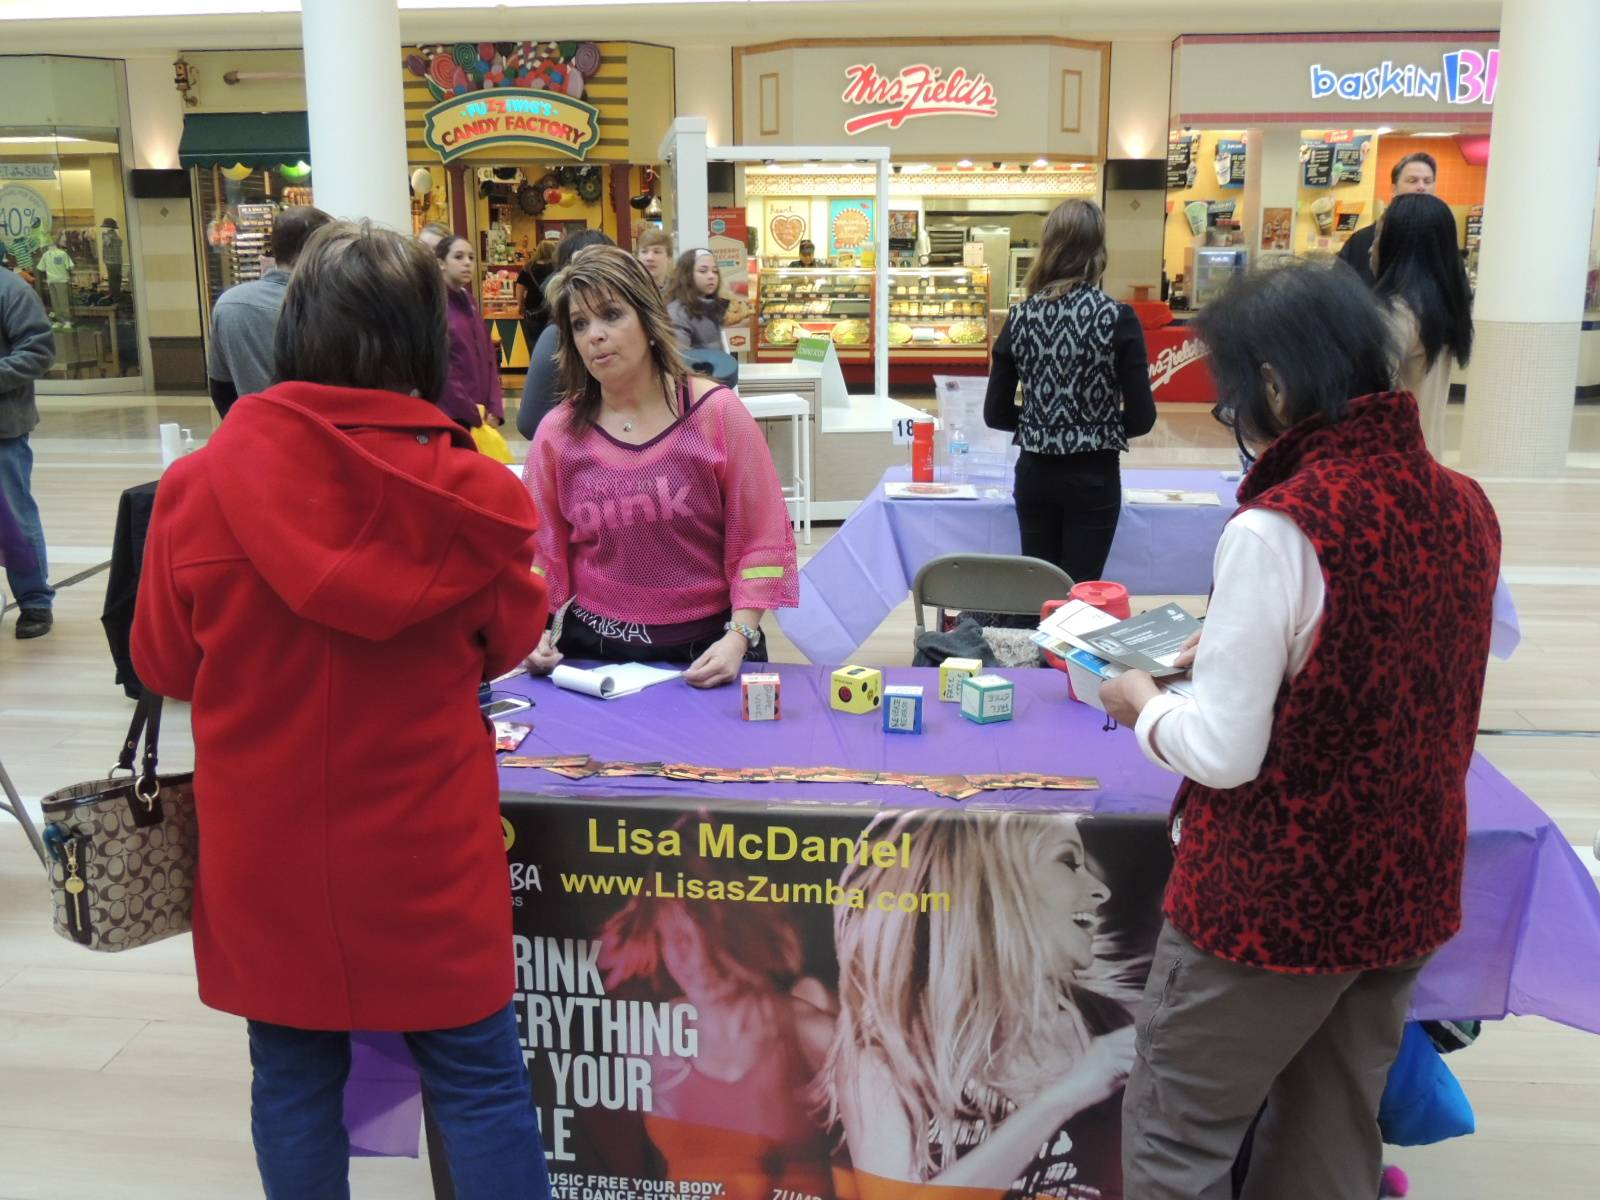 One of the exhibiters at the Fitness February Fair was Zumba Instructor Lisa McDaniel who also volunteers as Secretary for the Healthy Lombard Foundation. Here she is shown sharing information with visitors to the Healthy Lombard 2014 Fitness February Fair that was held in the Center Court of the Yorktown Center Mall. Jay Wojcik